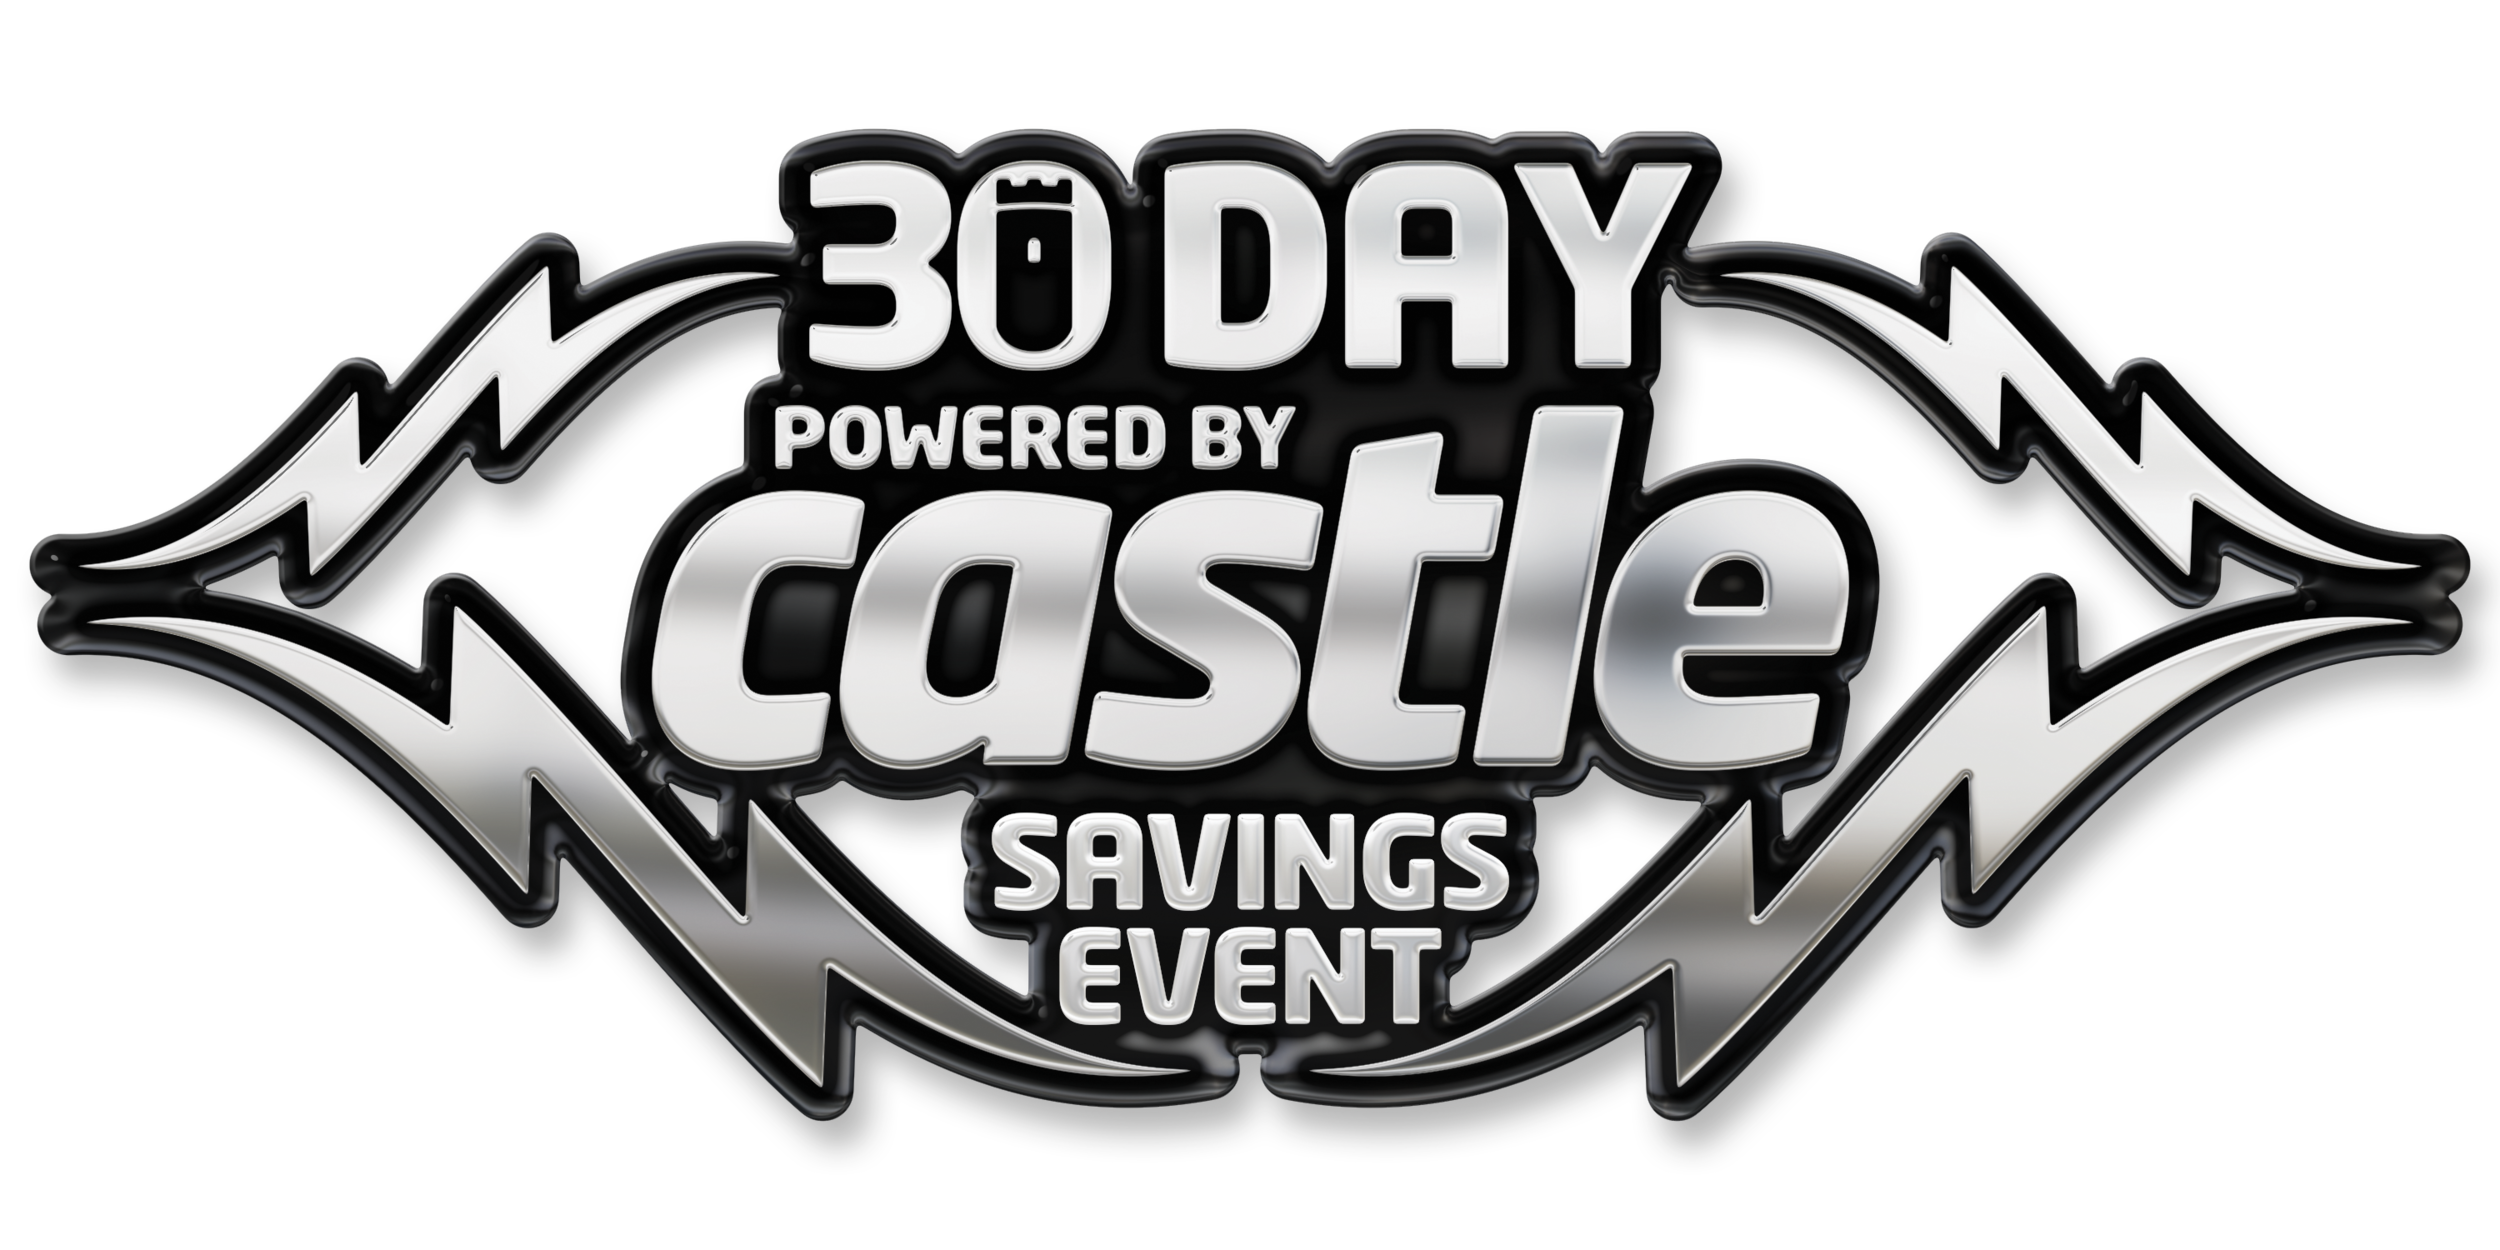 Powered-By-Castle-Sale_logo